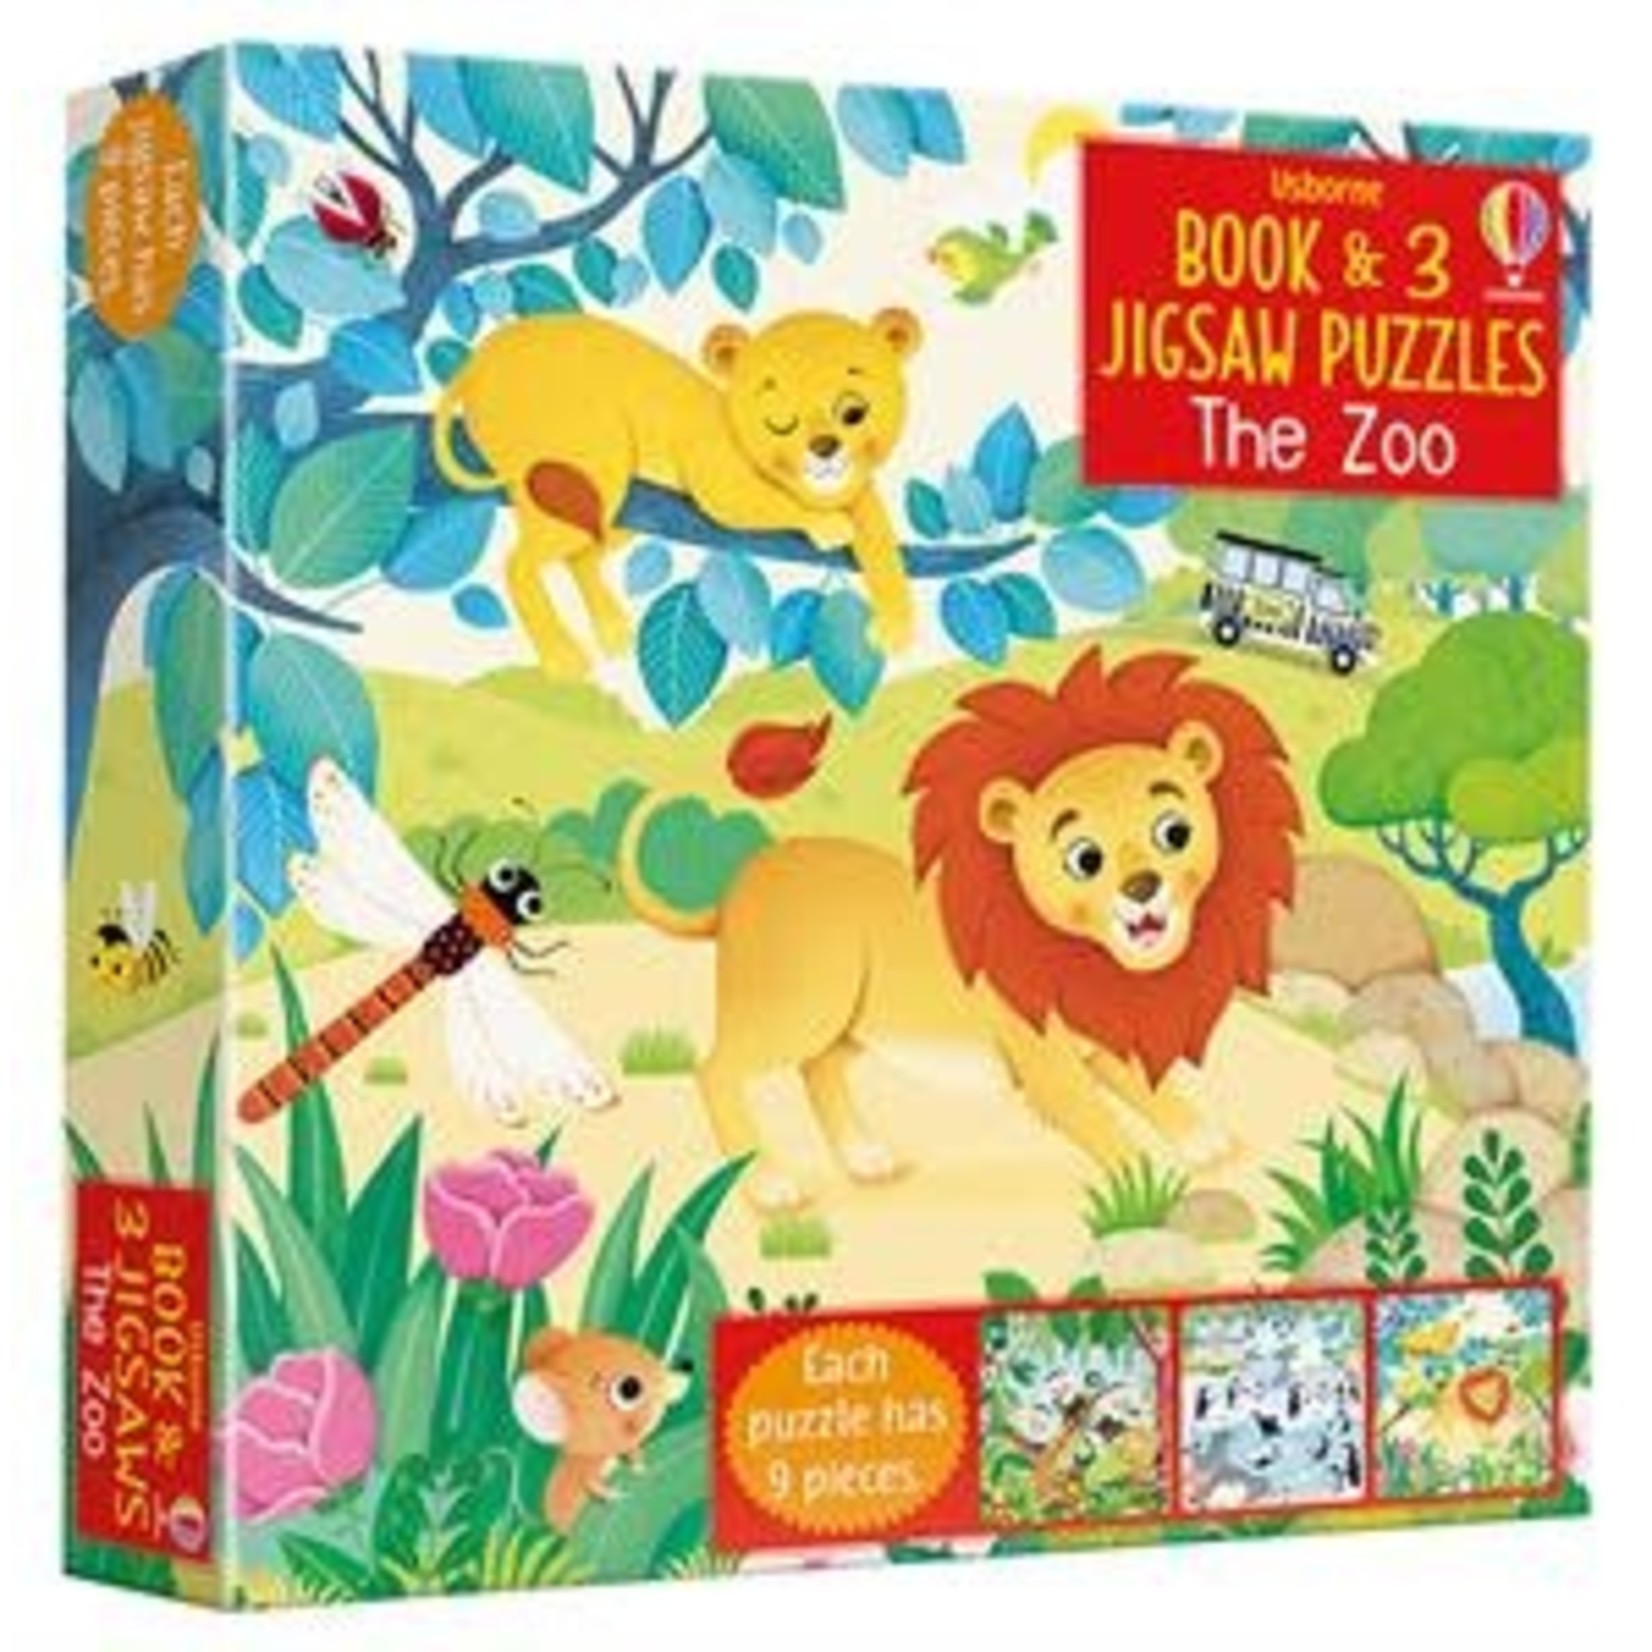 Usborne Book & 3 Jigsaw Puzzles: The Zoo (9 pieces)